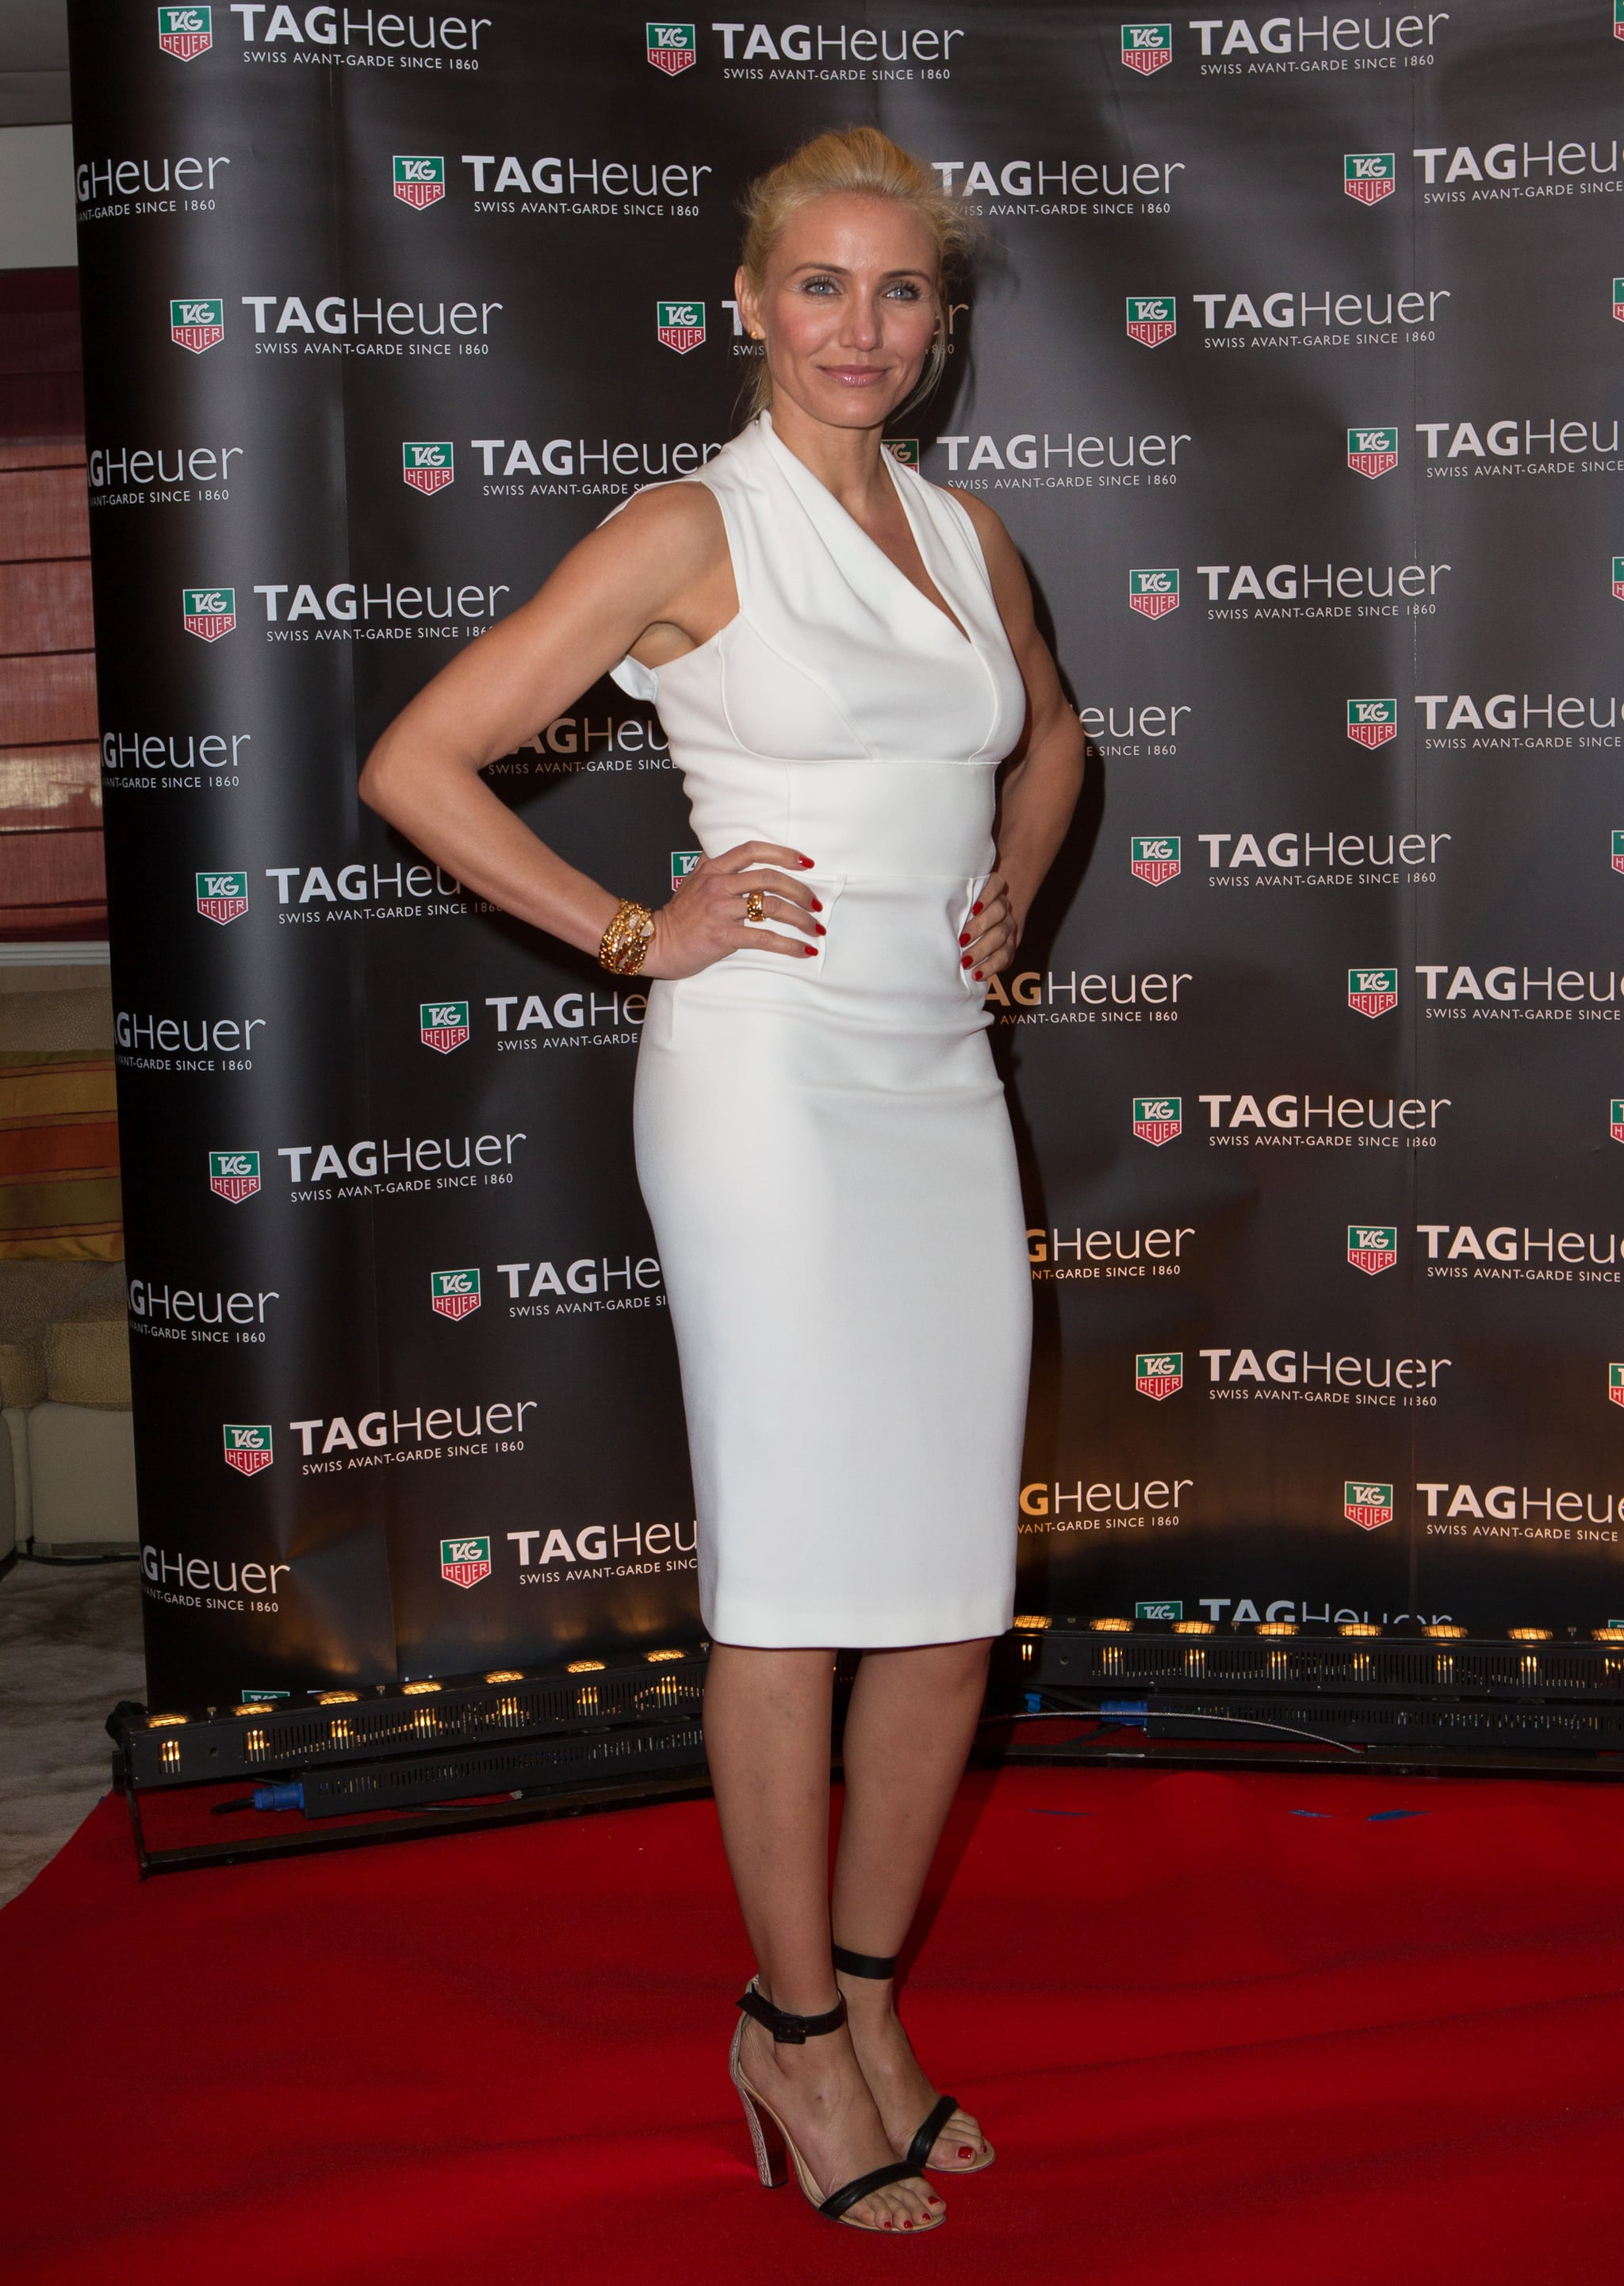 Cameron Diaz posed in a chic, white knee-length dress and black ankle-strap sandals at a Tag Heuer event in Monaco.